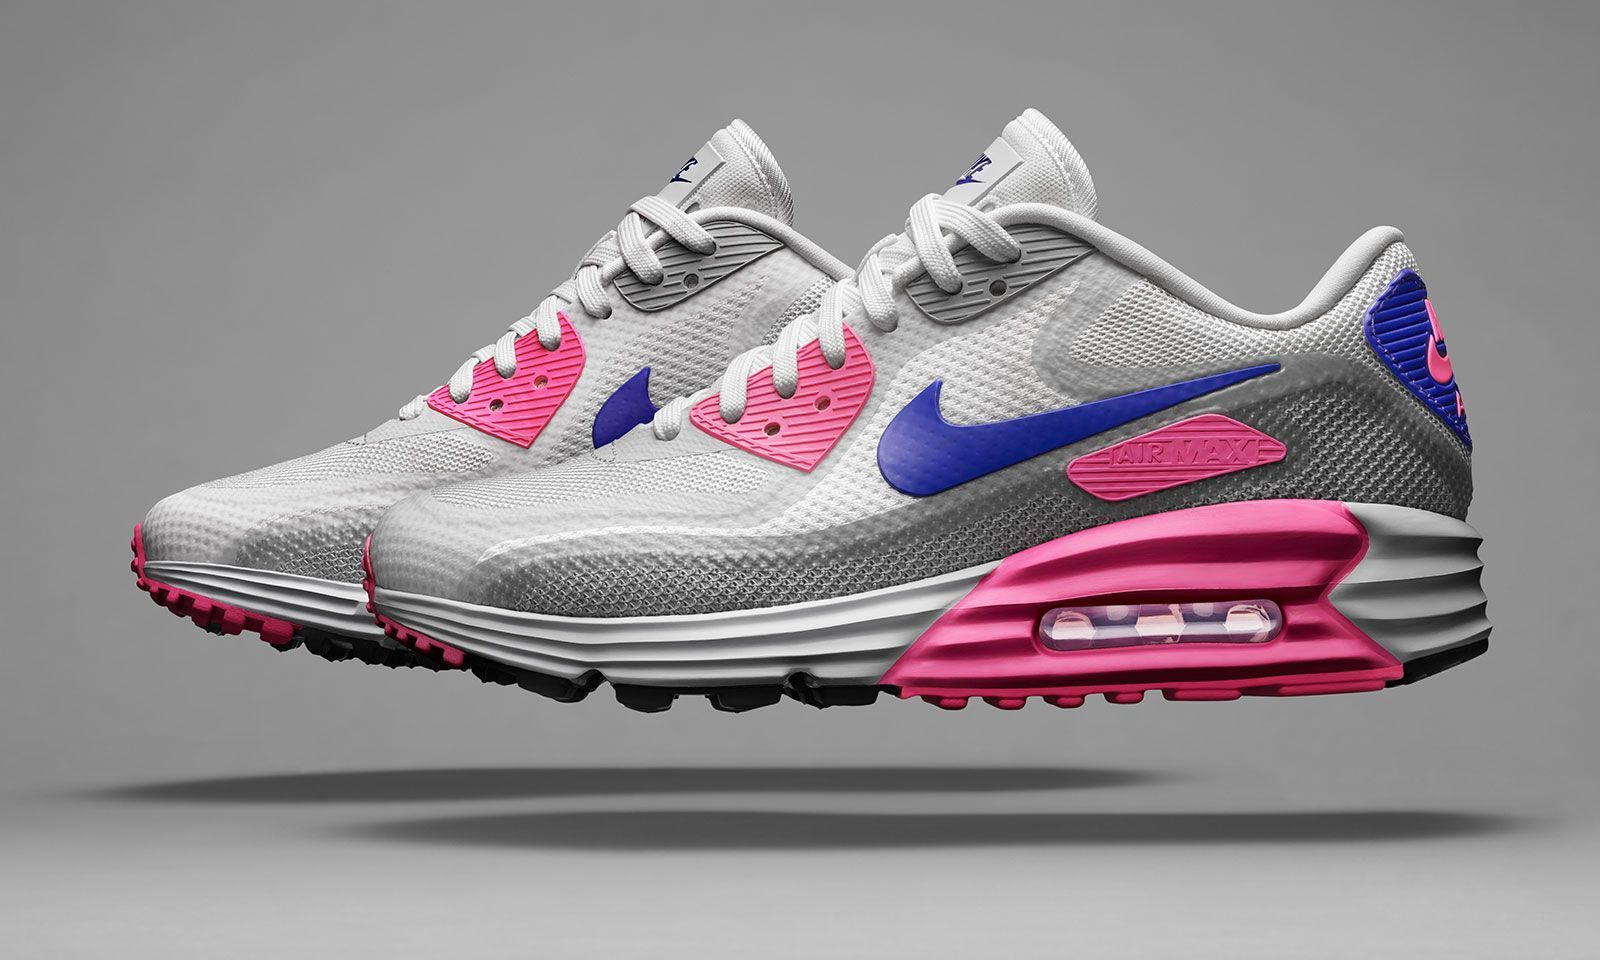 695e26f9ee4c Nike Debuts the New Air Max Nike has officially taken the wraps off the  upcoming Air Max More than just a new sole